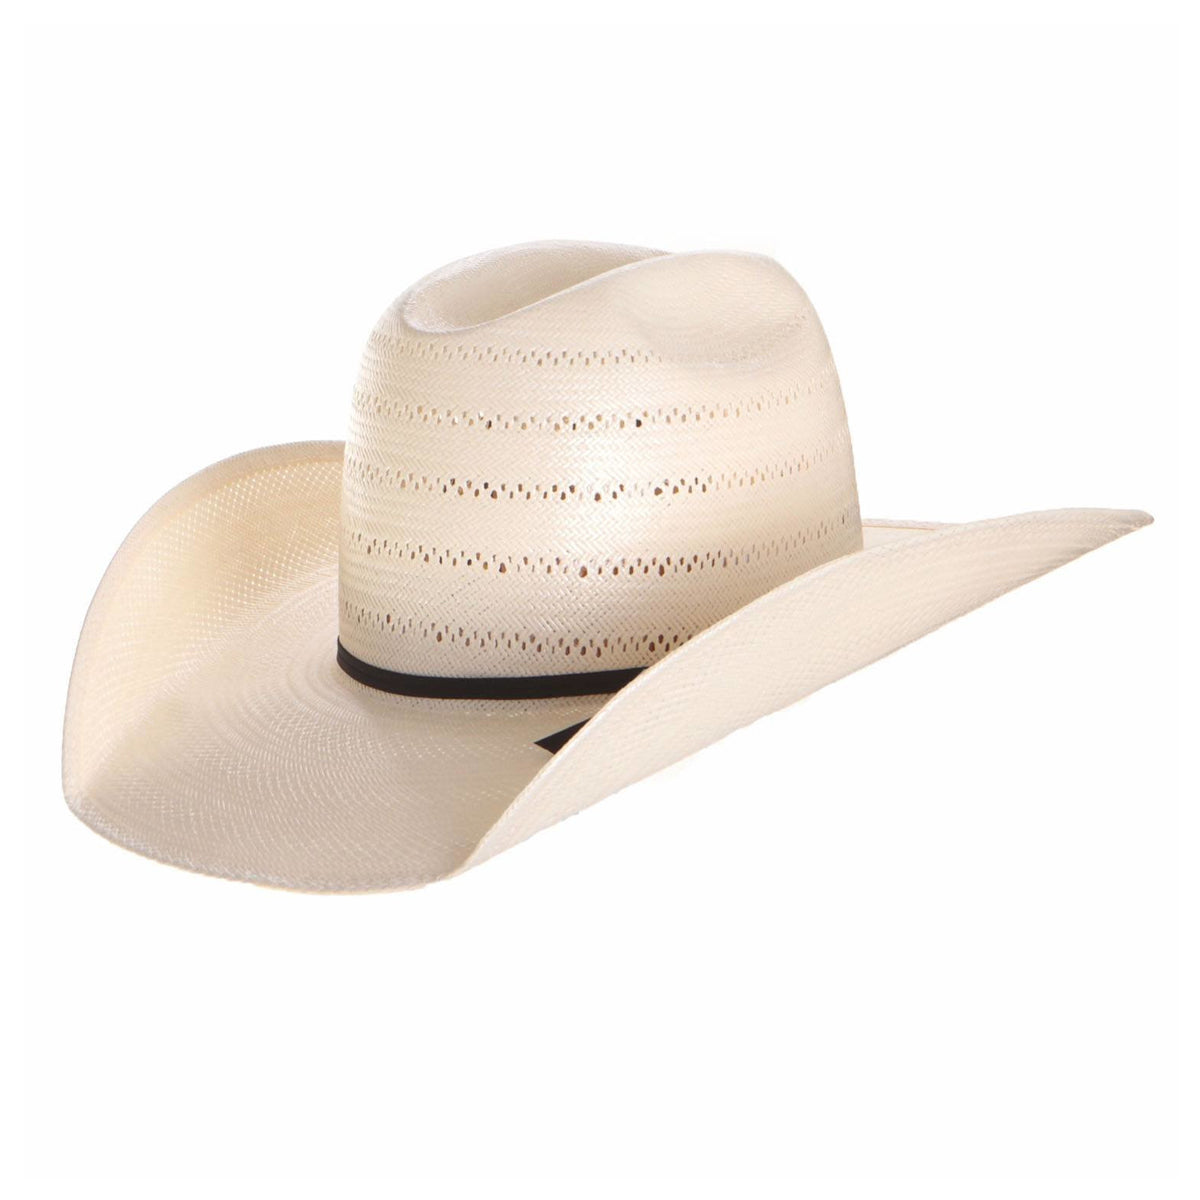 "4 1/4"" brim Black Straw by American Hat"